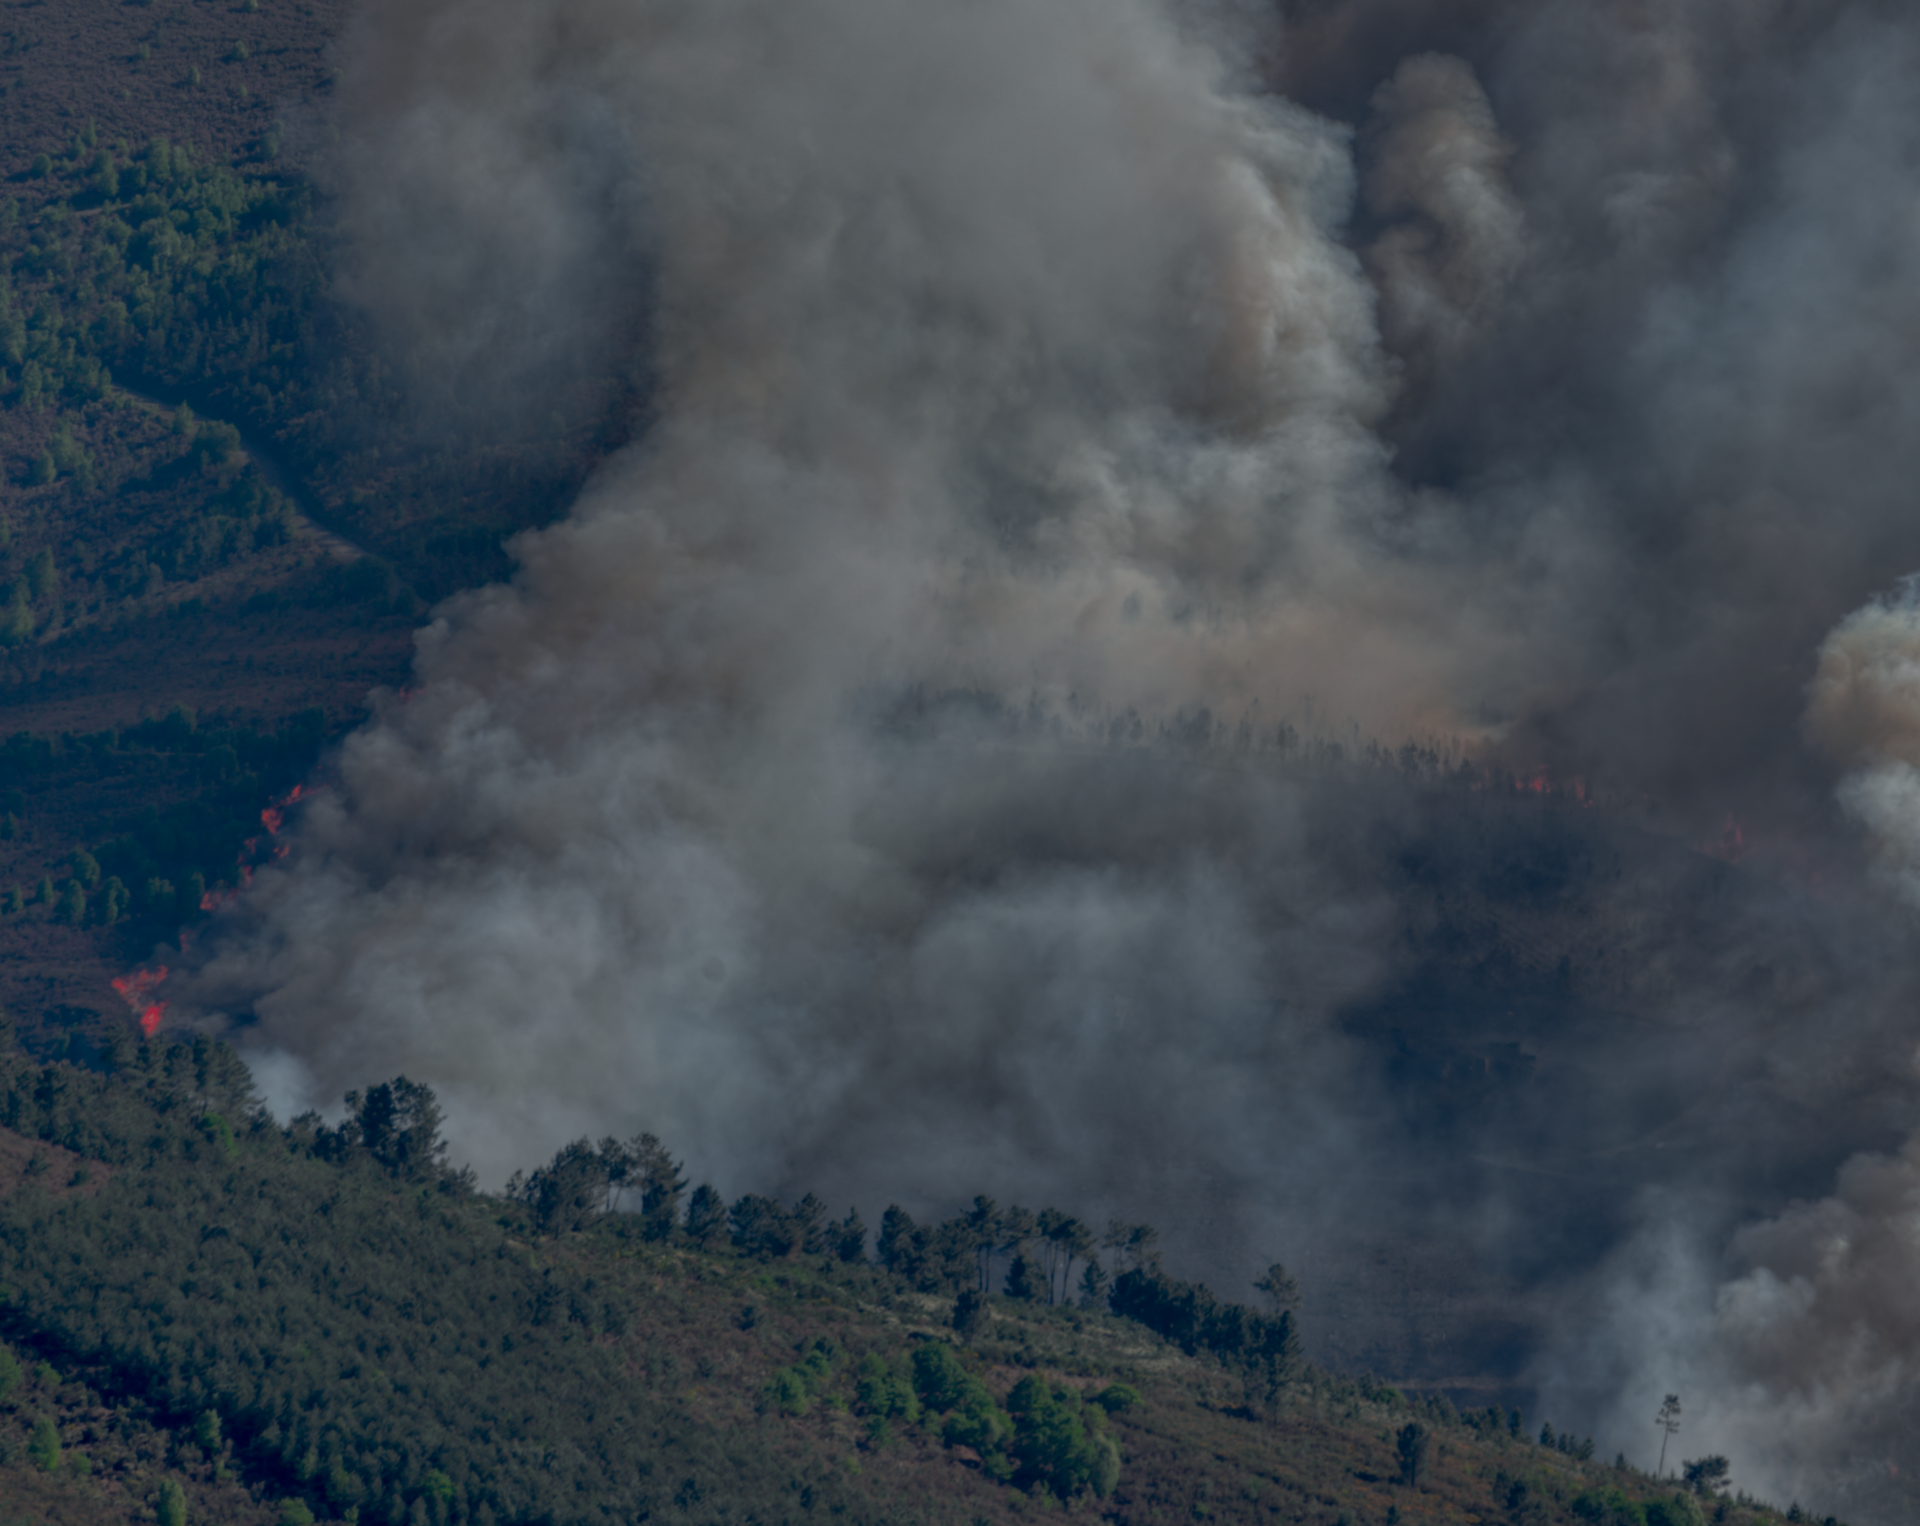 AIIR's visual anomaly detection solution can detect the start of a wildfire from a simple video image in real-time in order to survey areas unreachable by humans.